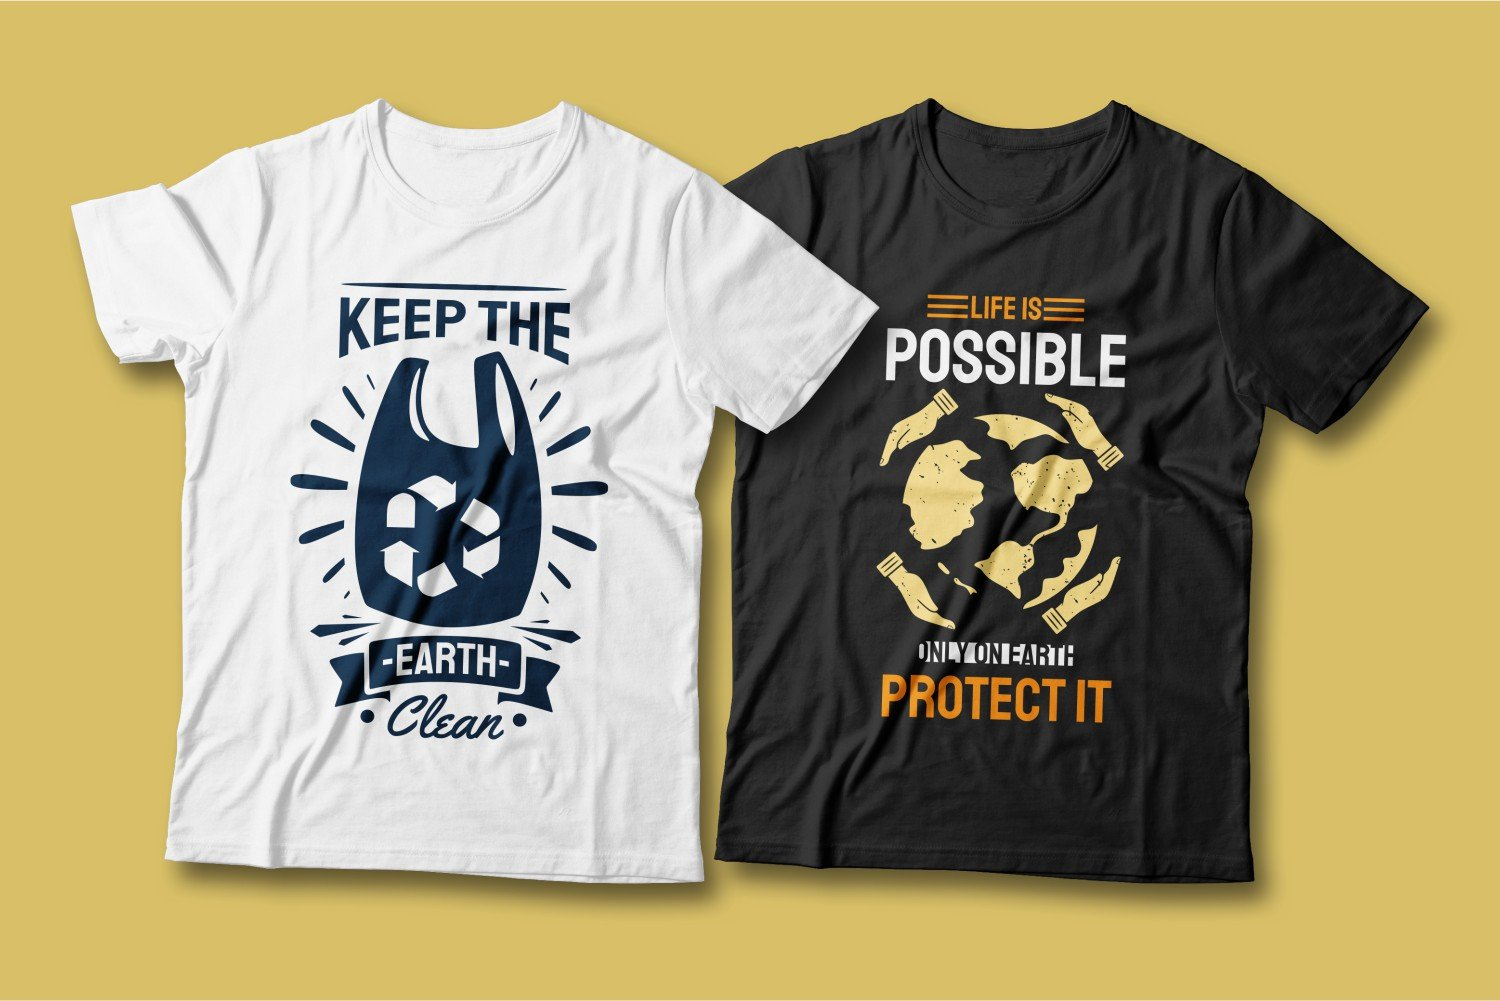 Two T-shirts - one white, the other black; they are with different images, but with the same meaning - recycling.